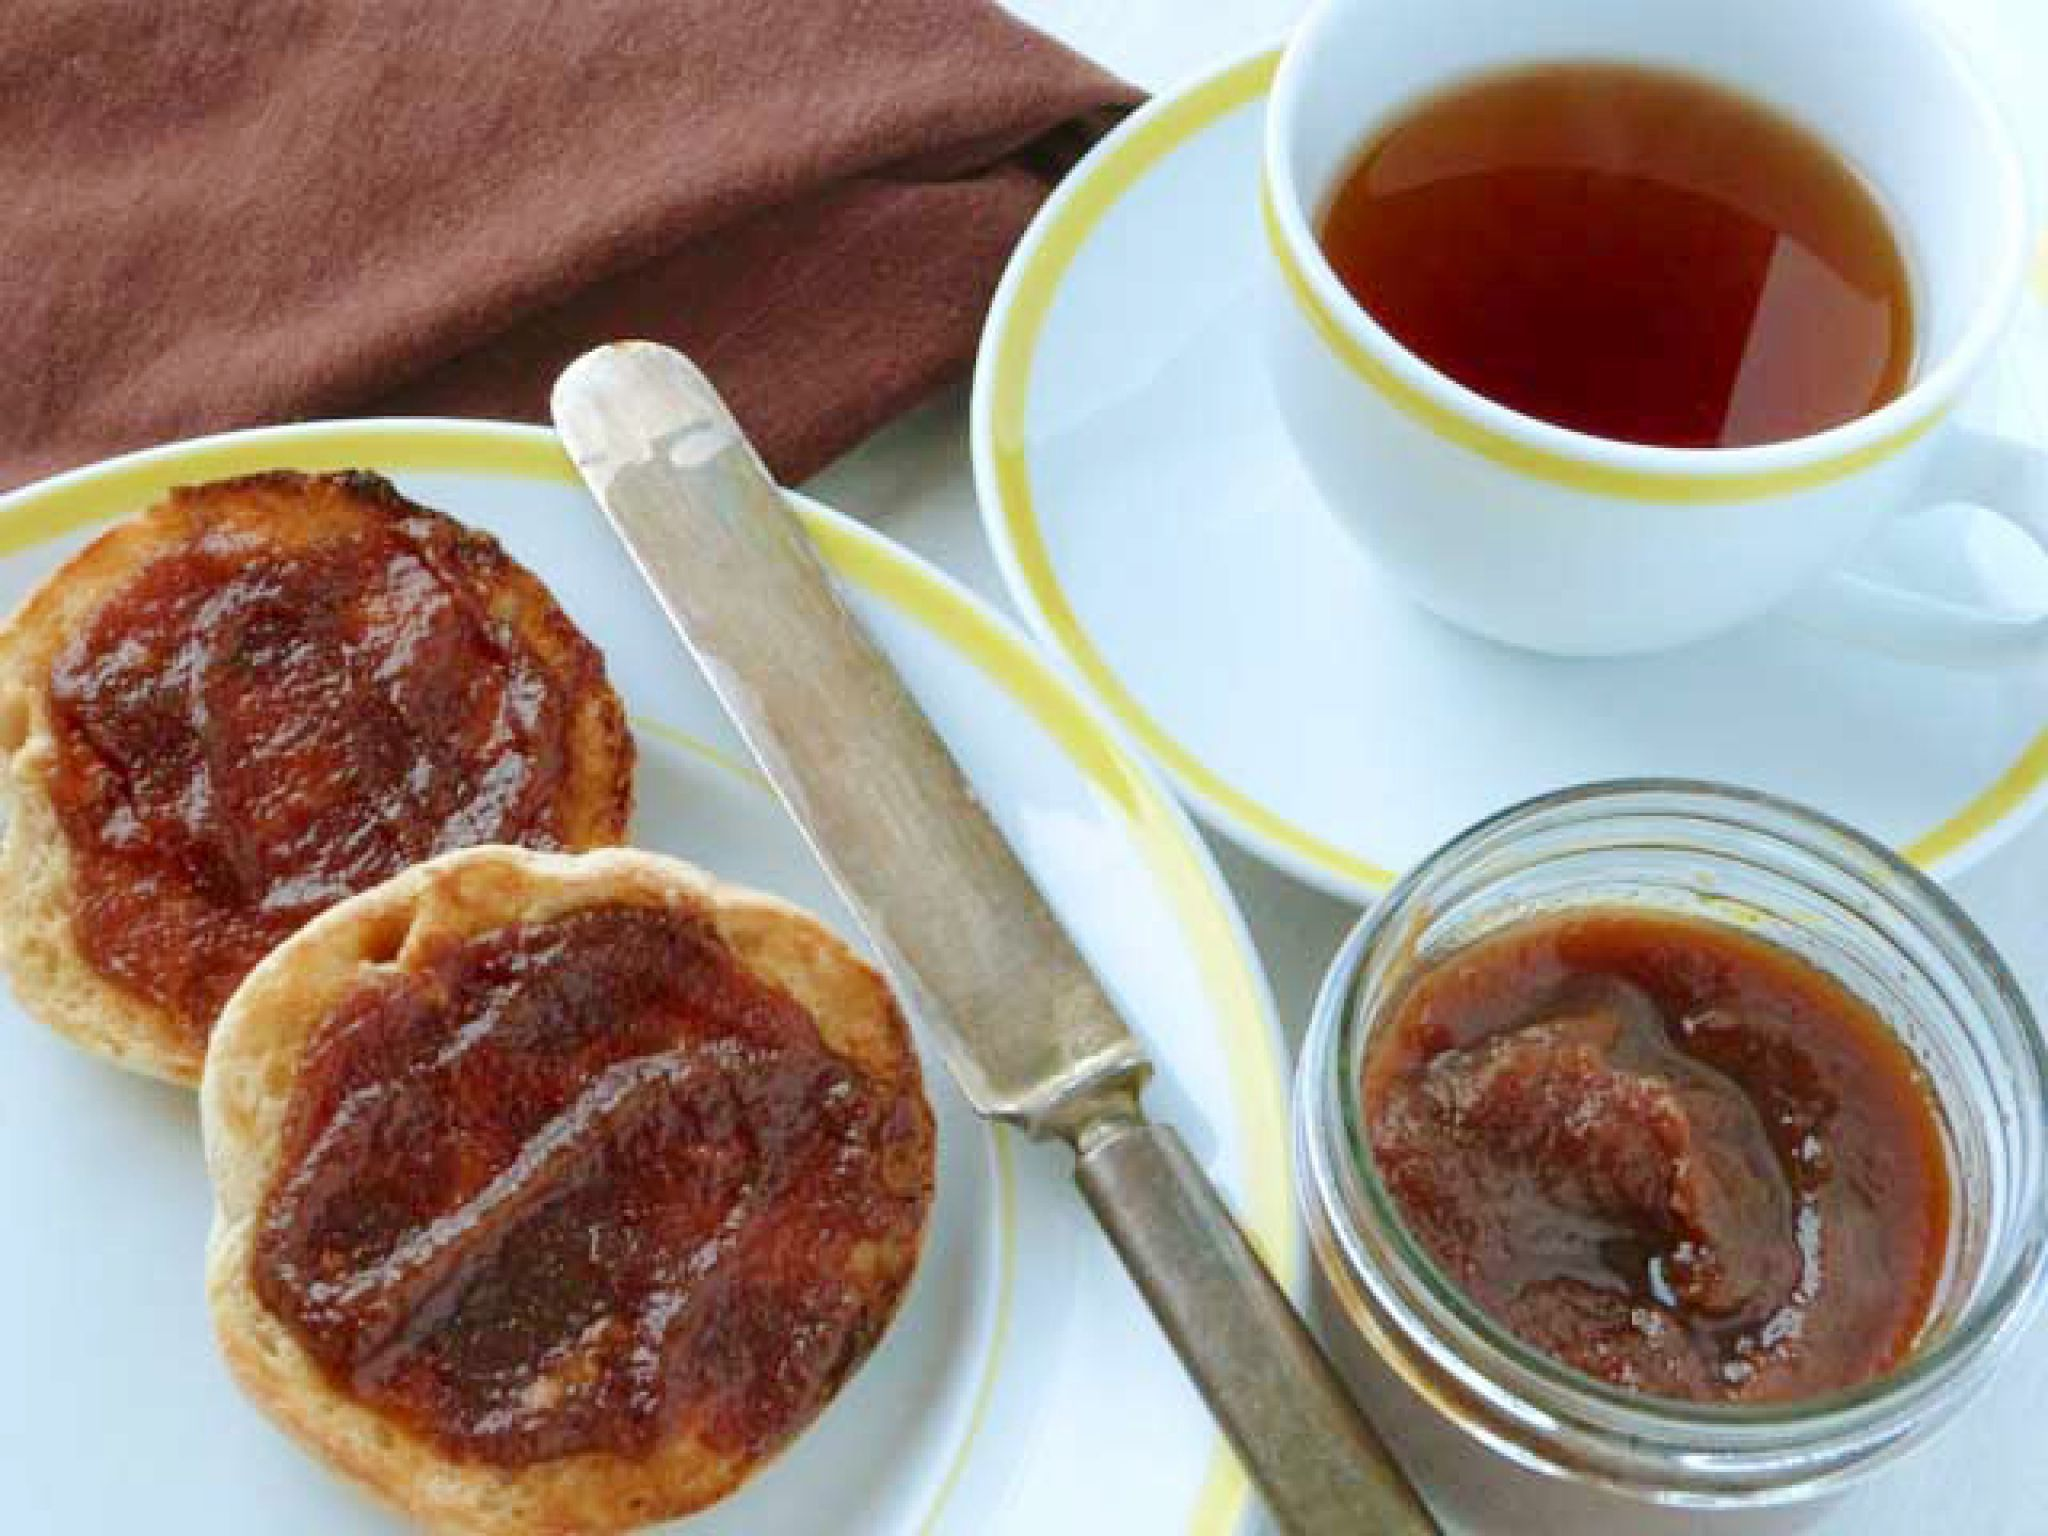 Apple Butter 101 : Apple butter is a traditional preserve with a rustic, thick texture. It's also one of the easiest to make, requiring no peeling or coring, and you can make it right in your slow cooker.